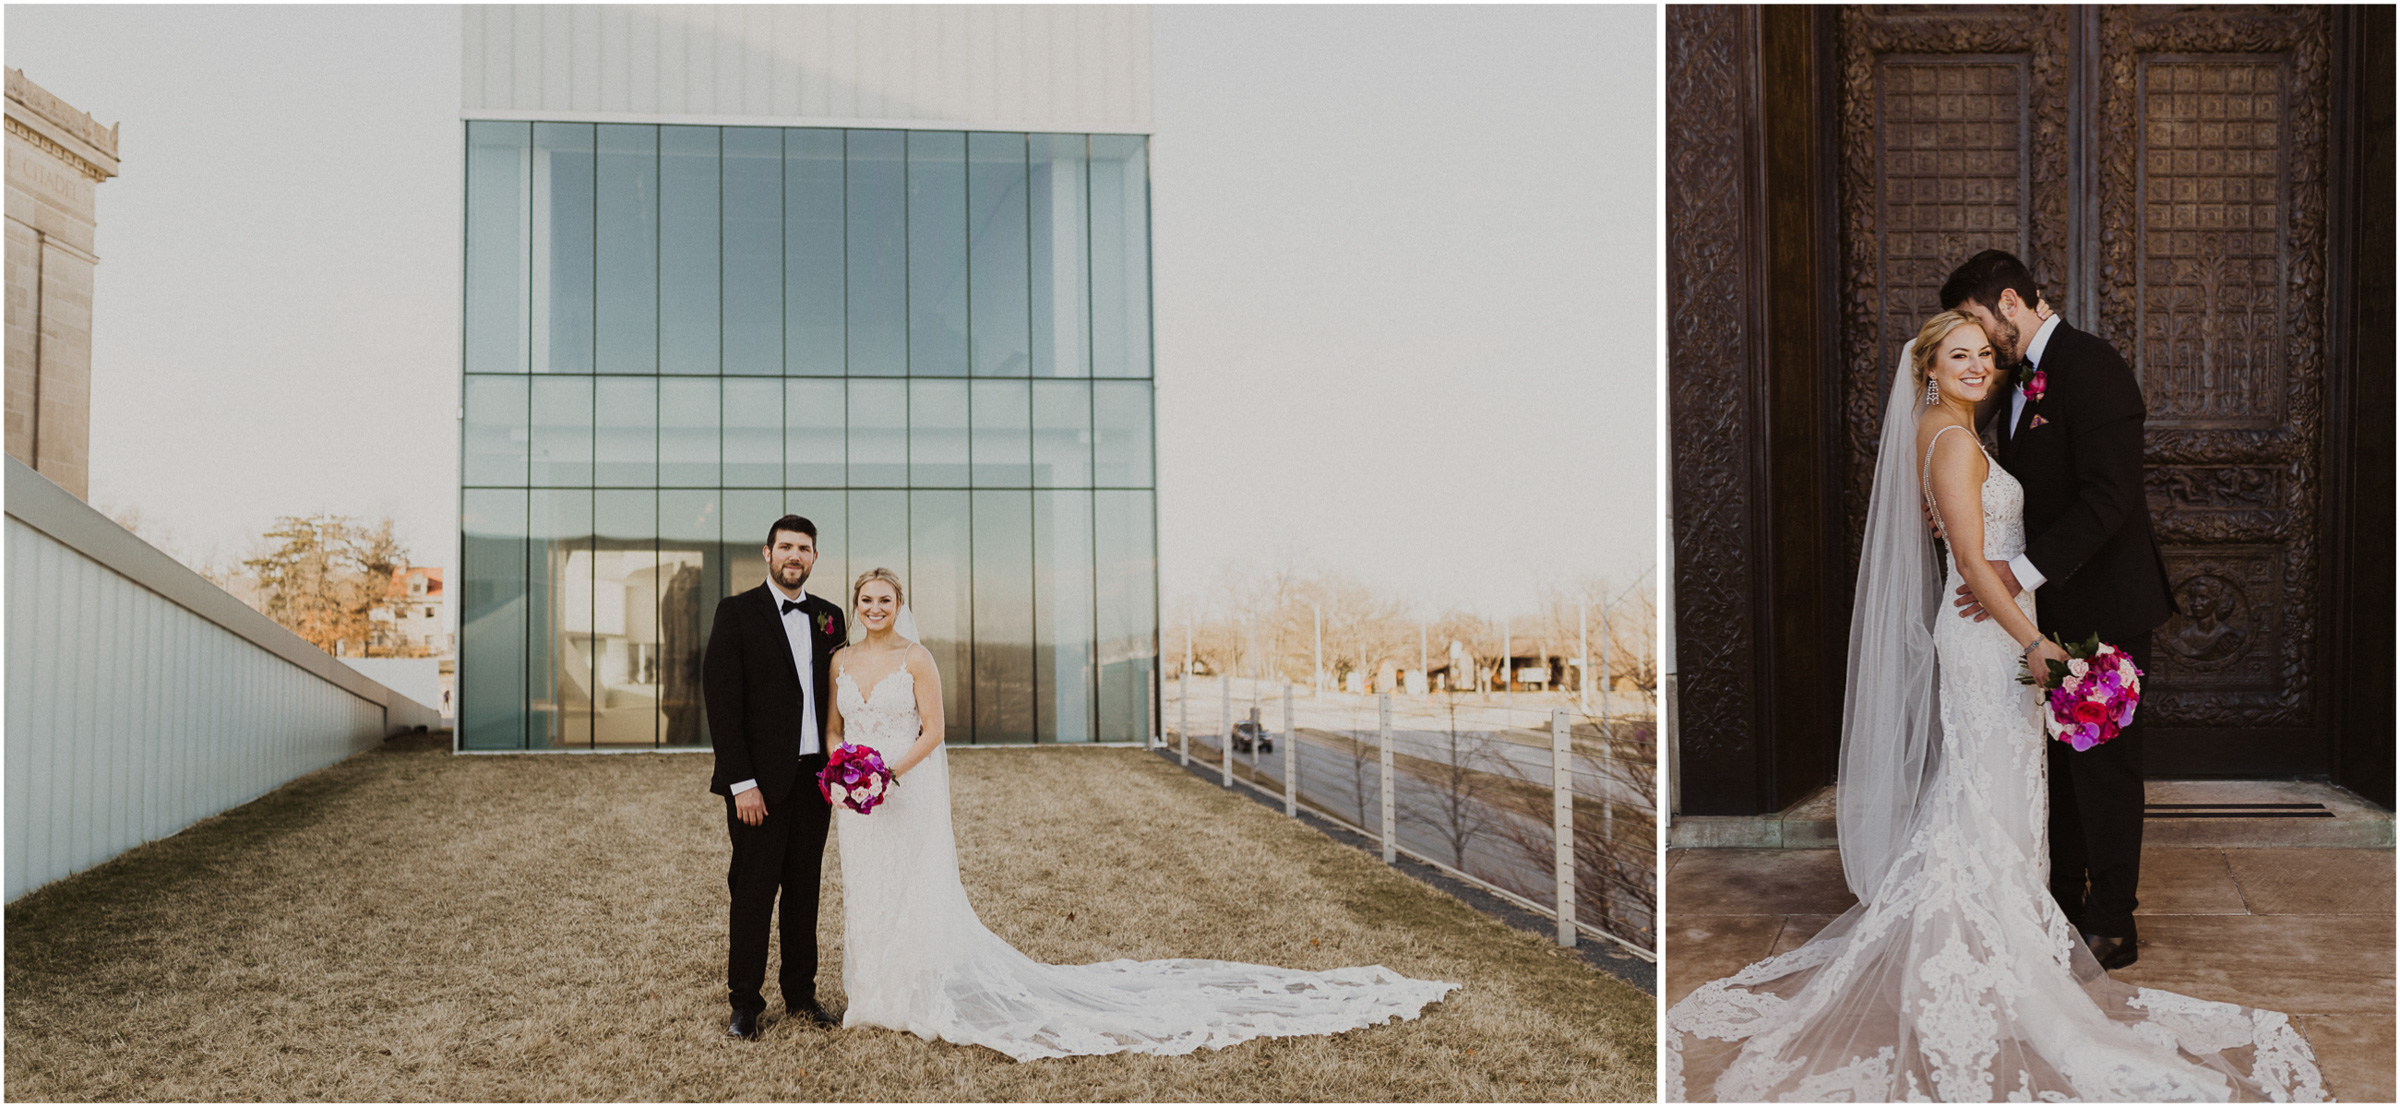 alyssa barletter photography nelson atkins museum intimate romantic spring wedding pilgrim chapel kcmo-33.jpg